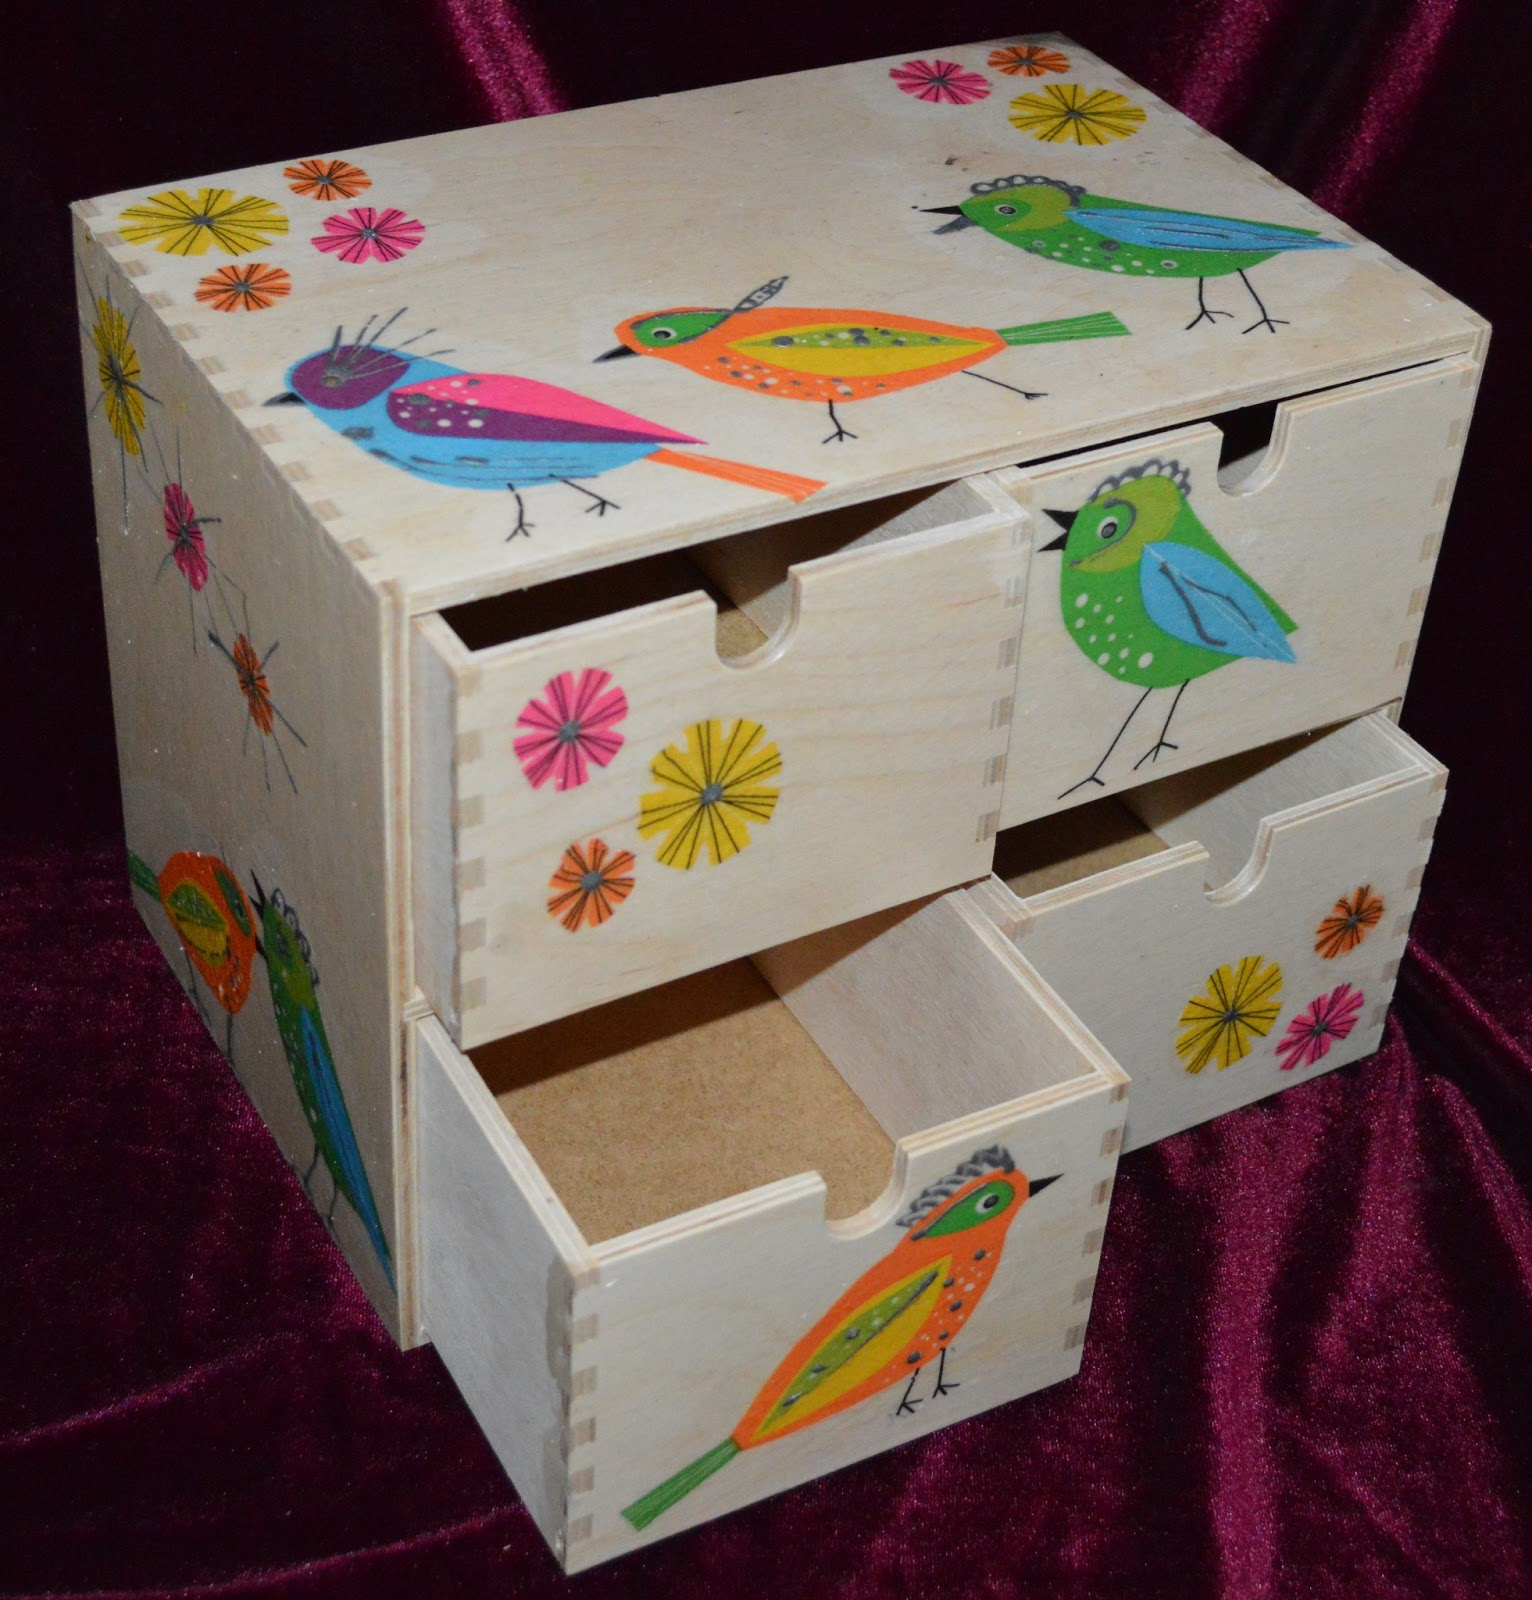 Agni S Art Space Decoupage Mini Chest Of Drawers And